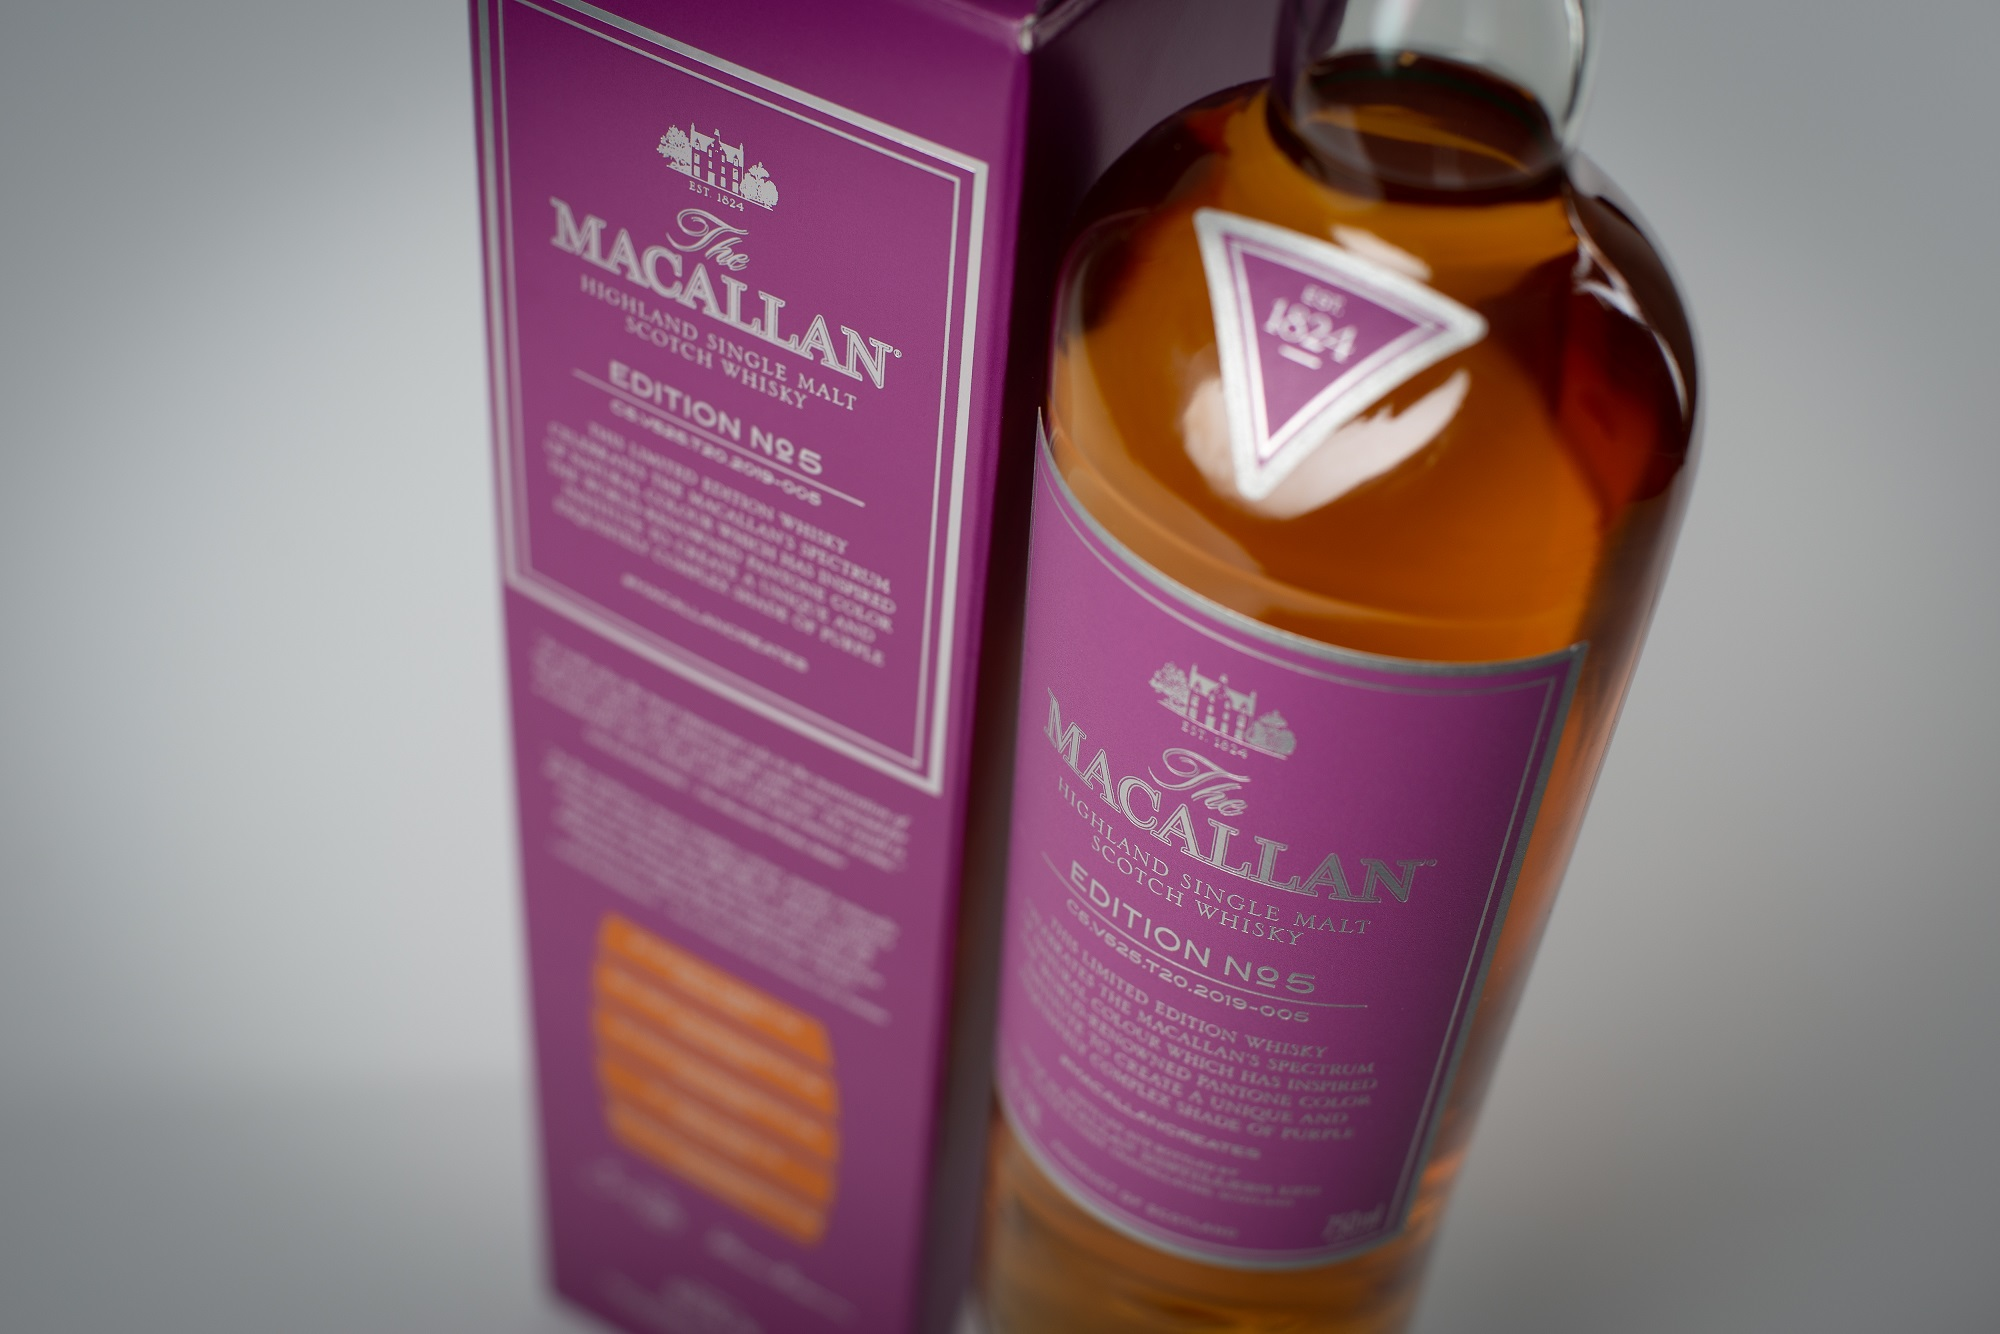 The Macallan Shows Its True Colour With The Edition No. 5 photo